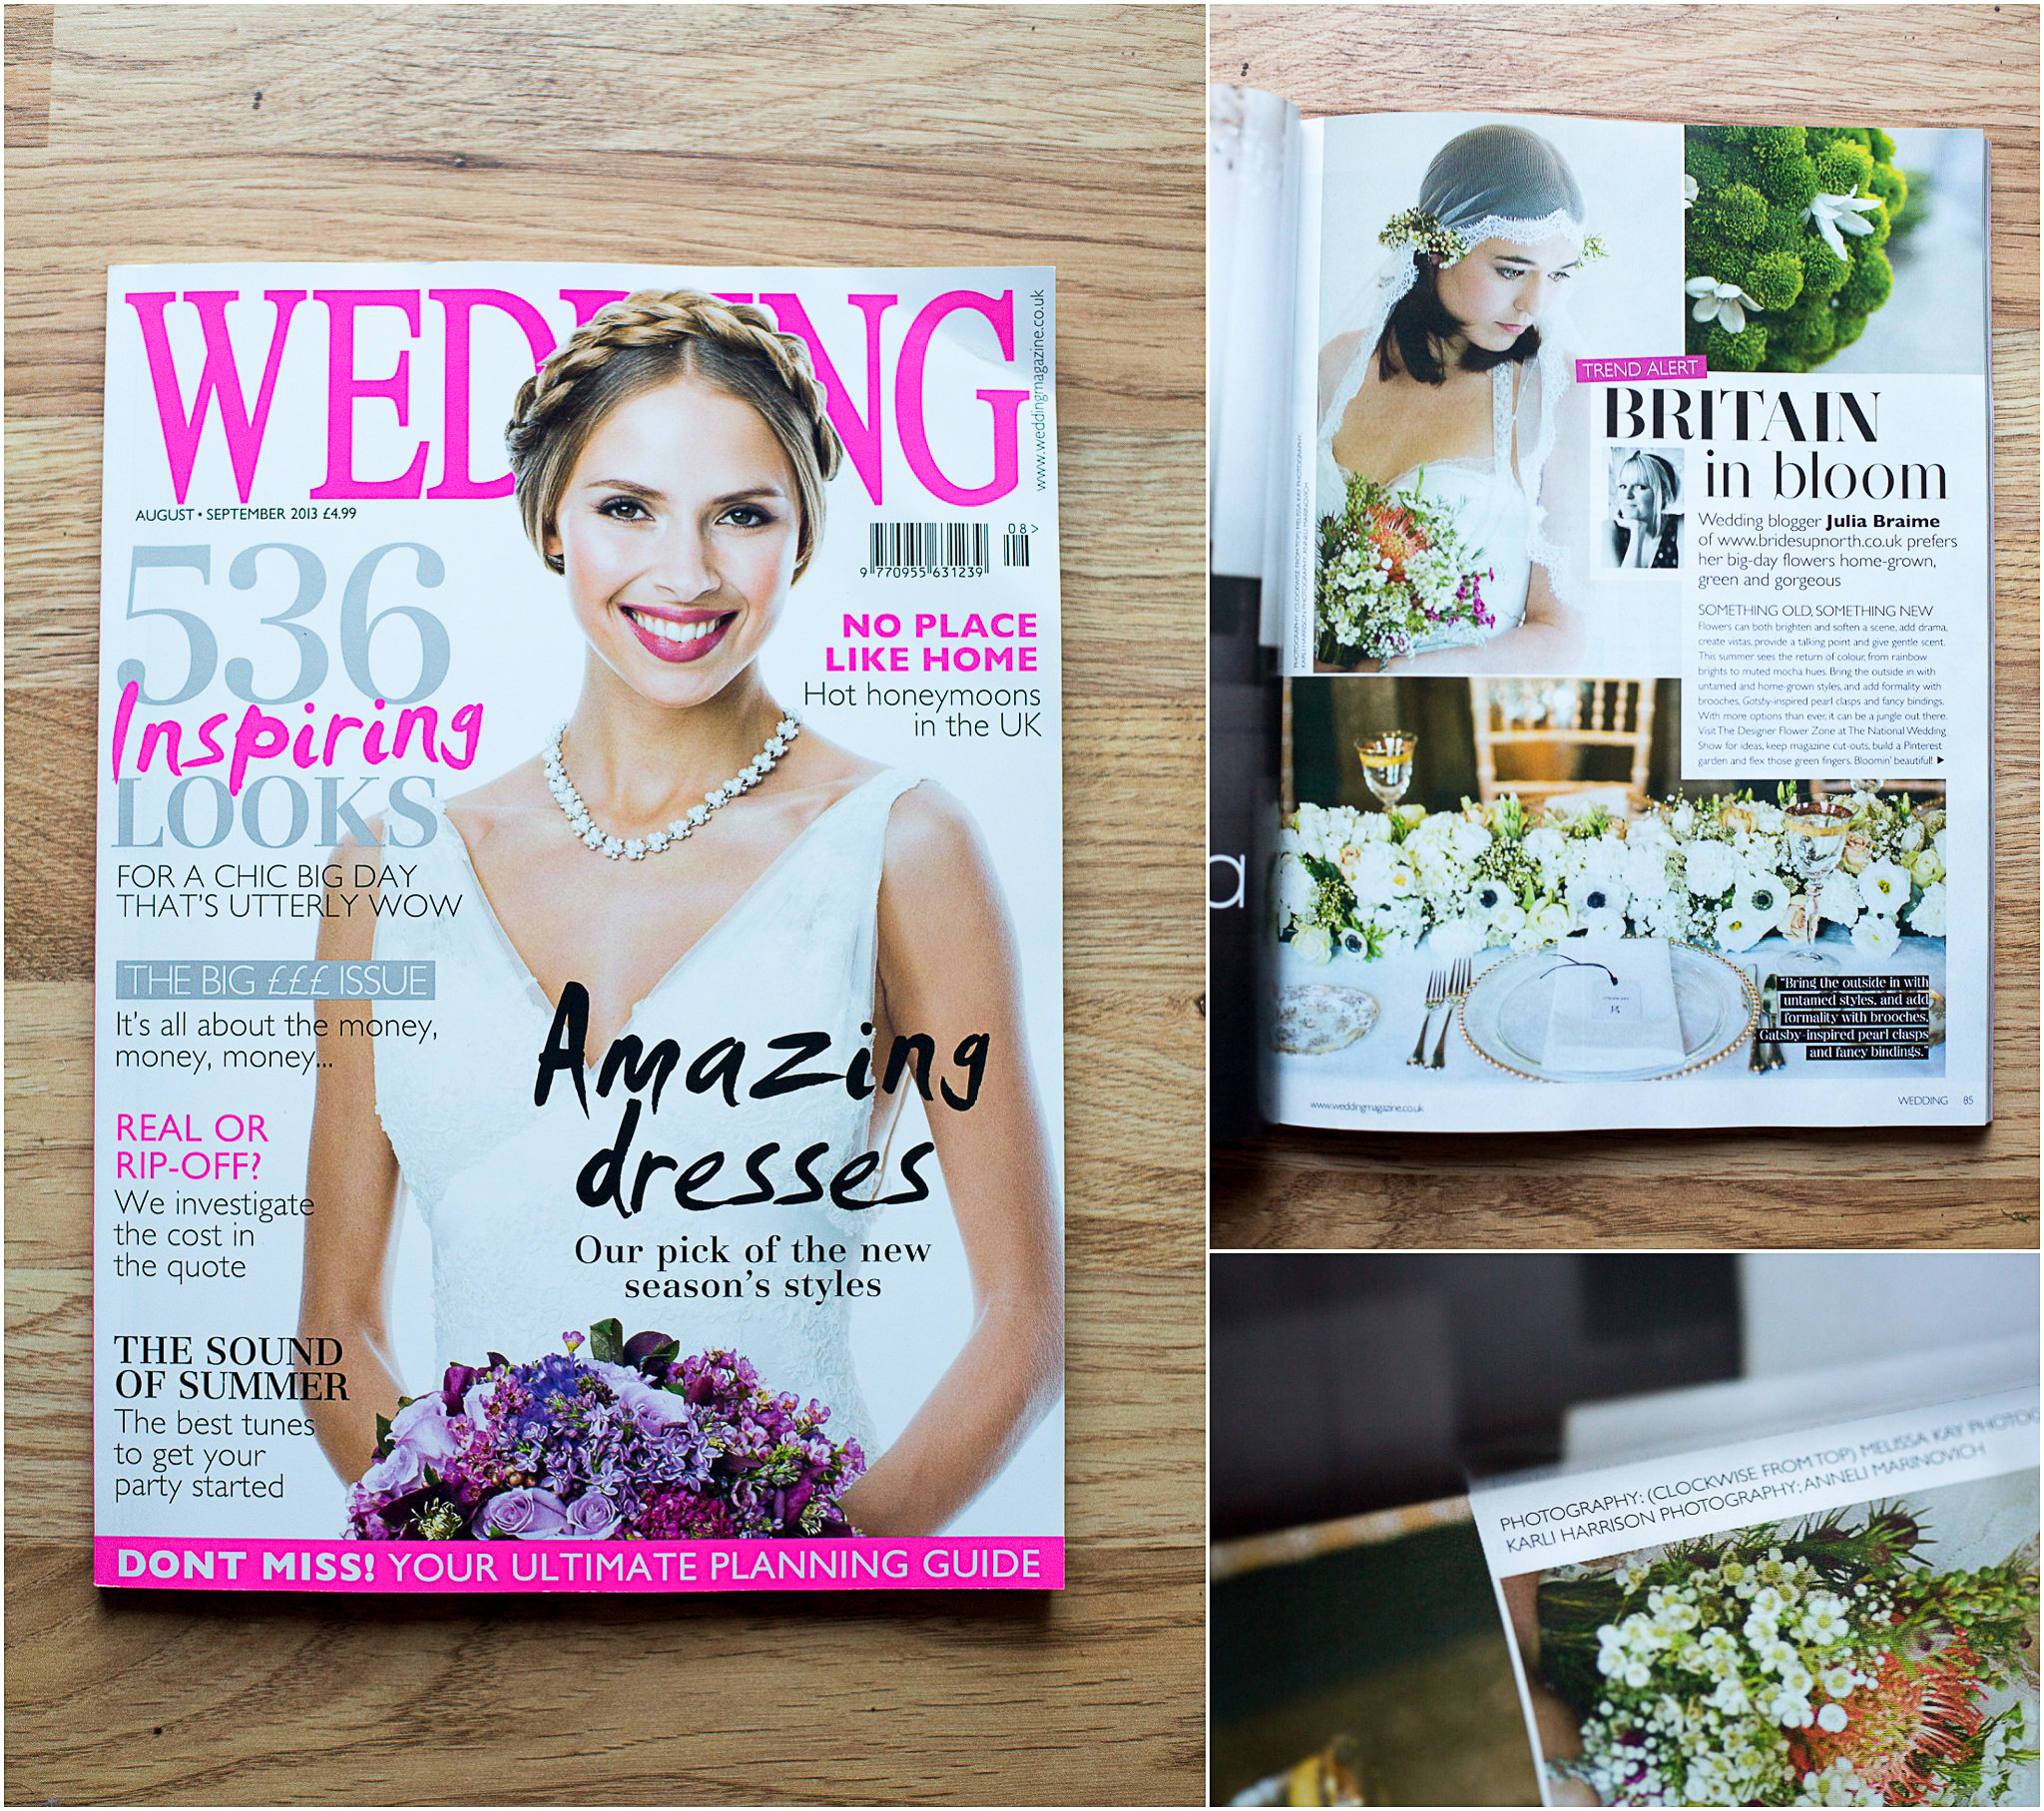 National Wedding Magazine 'Wedding' Photography Published